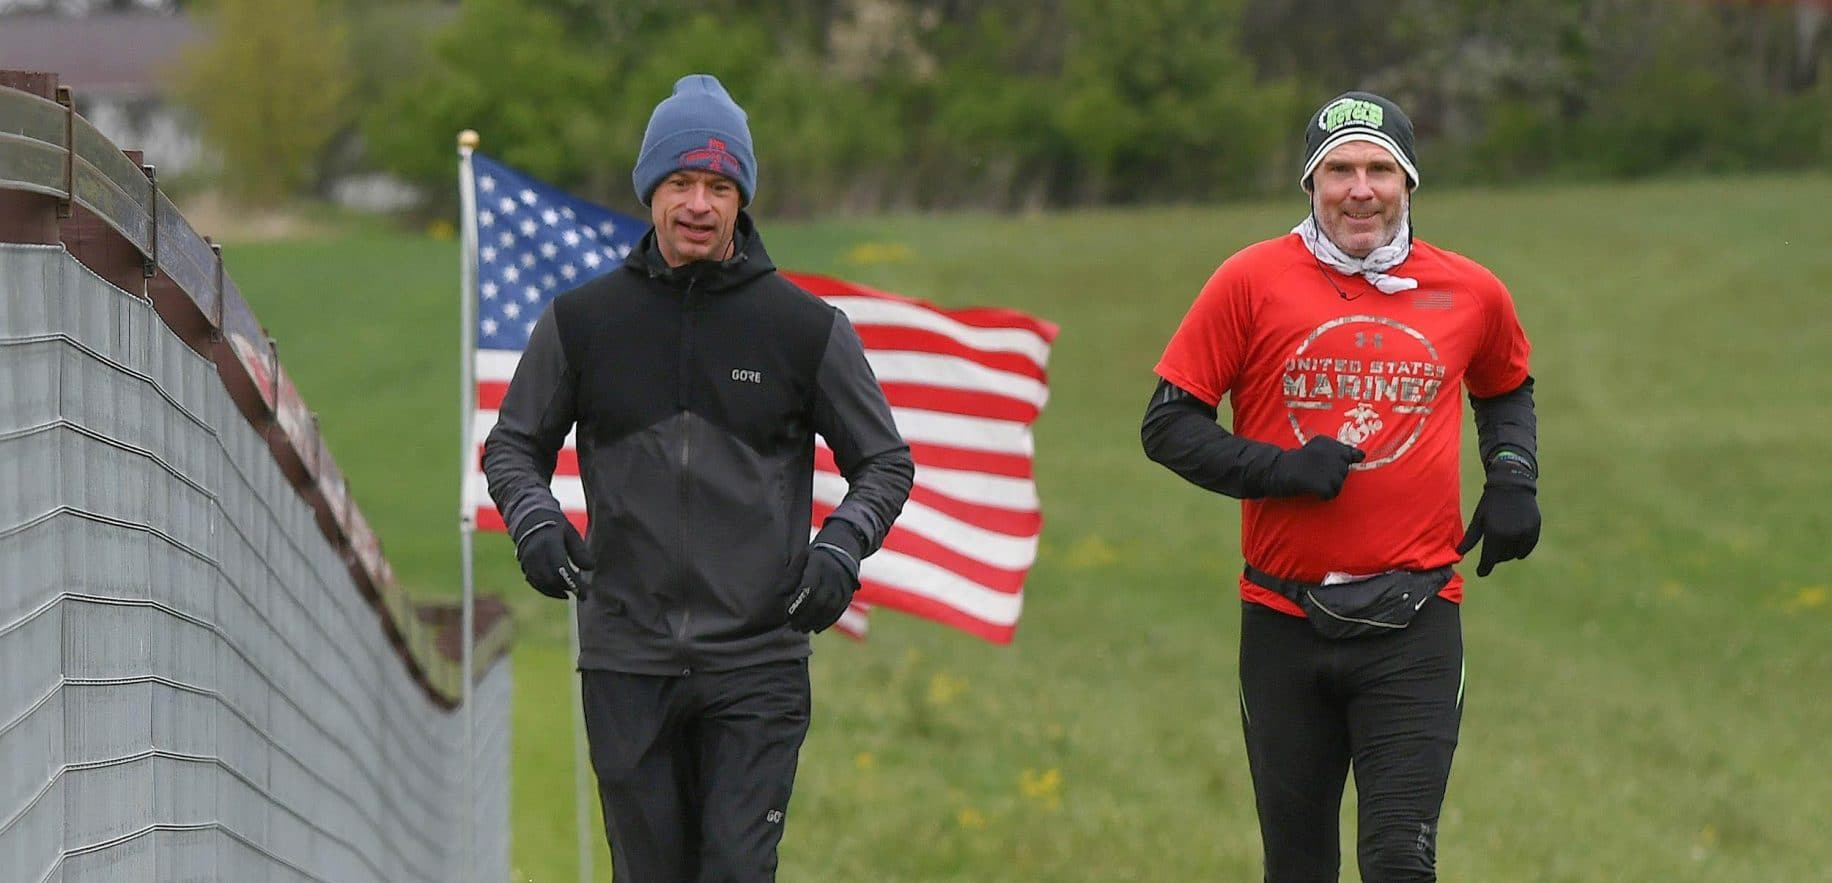 Veterans run 24 hours to raise funds for nonprofit group